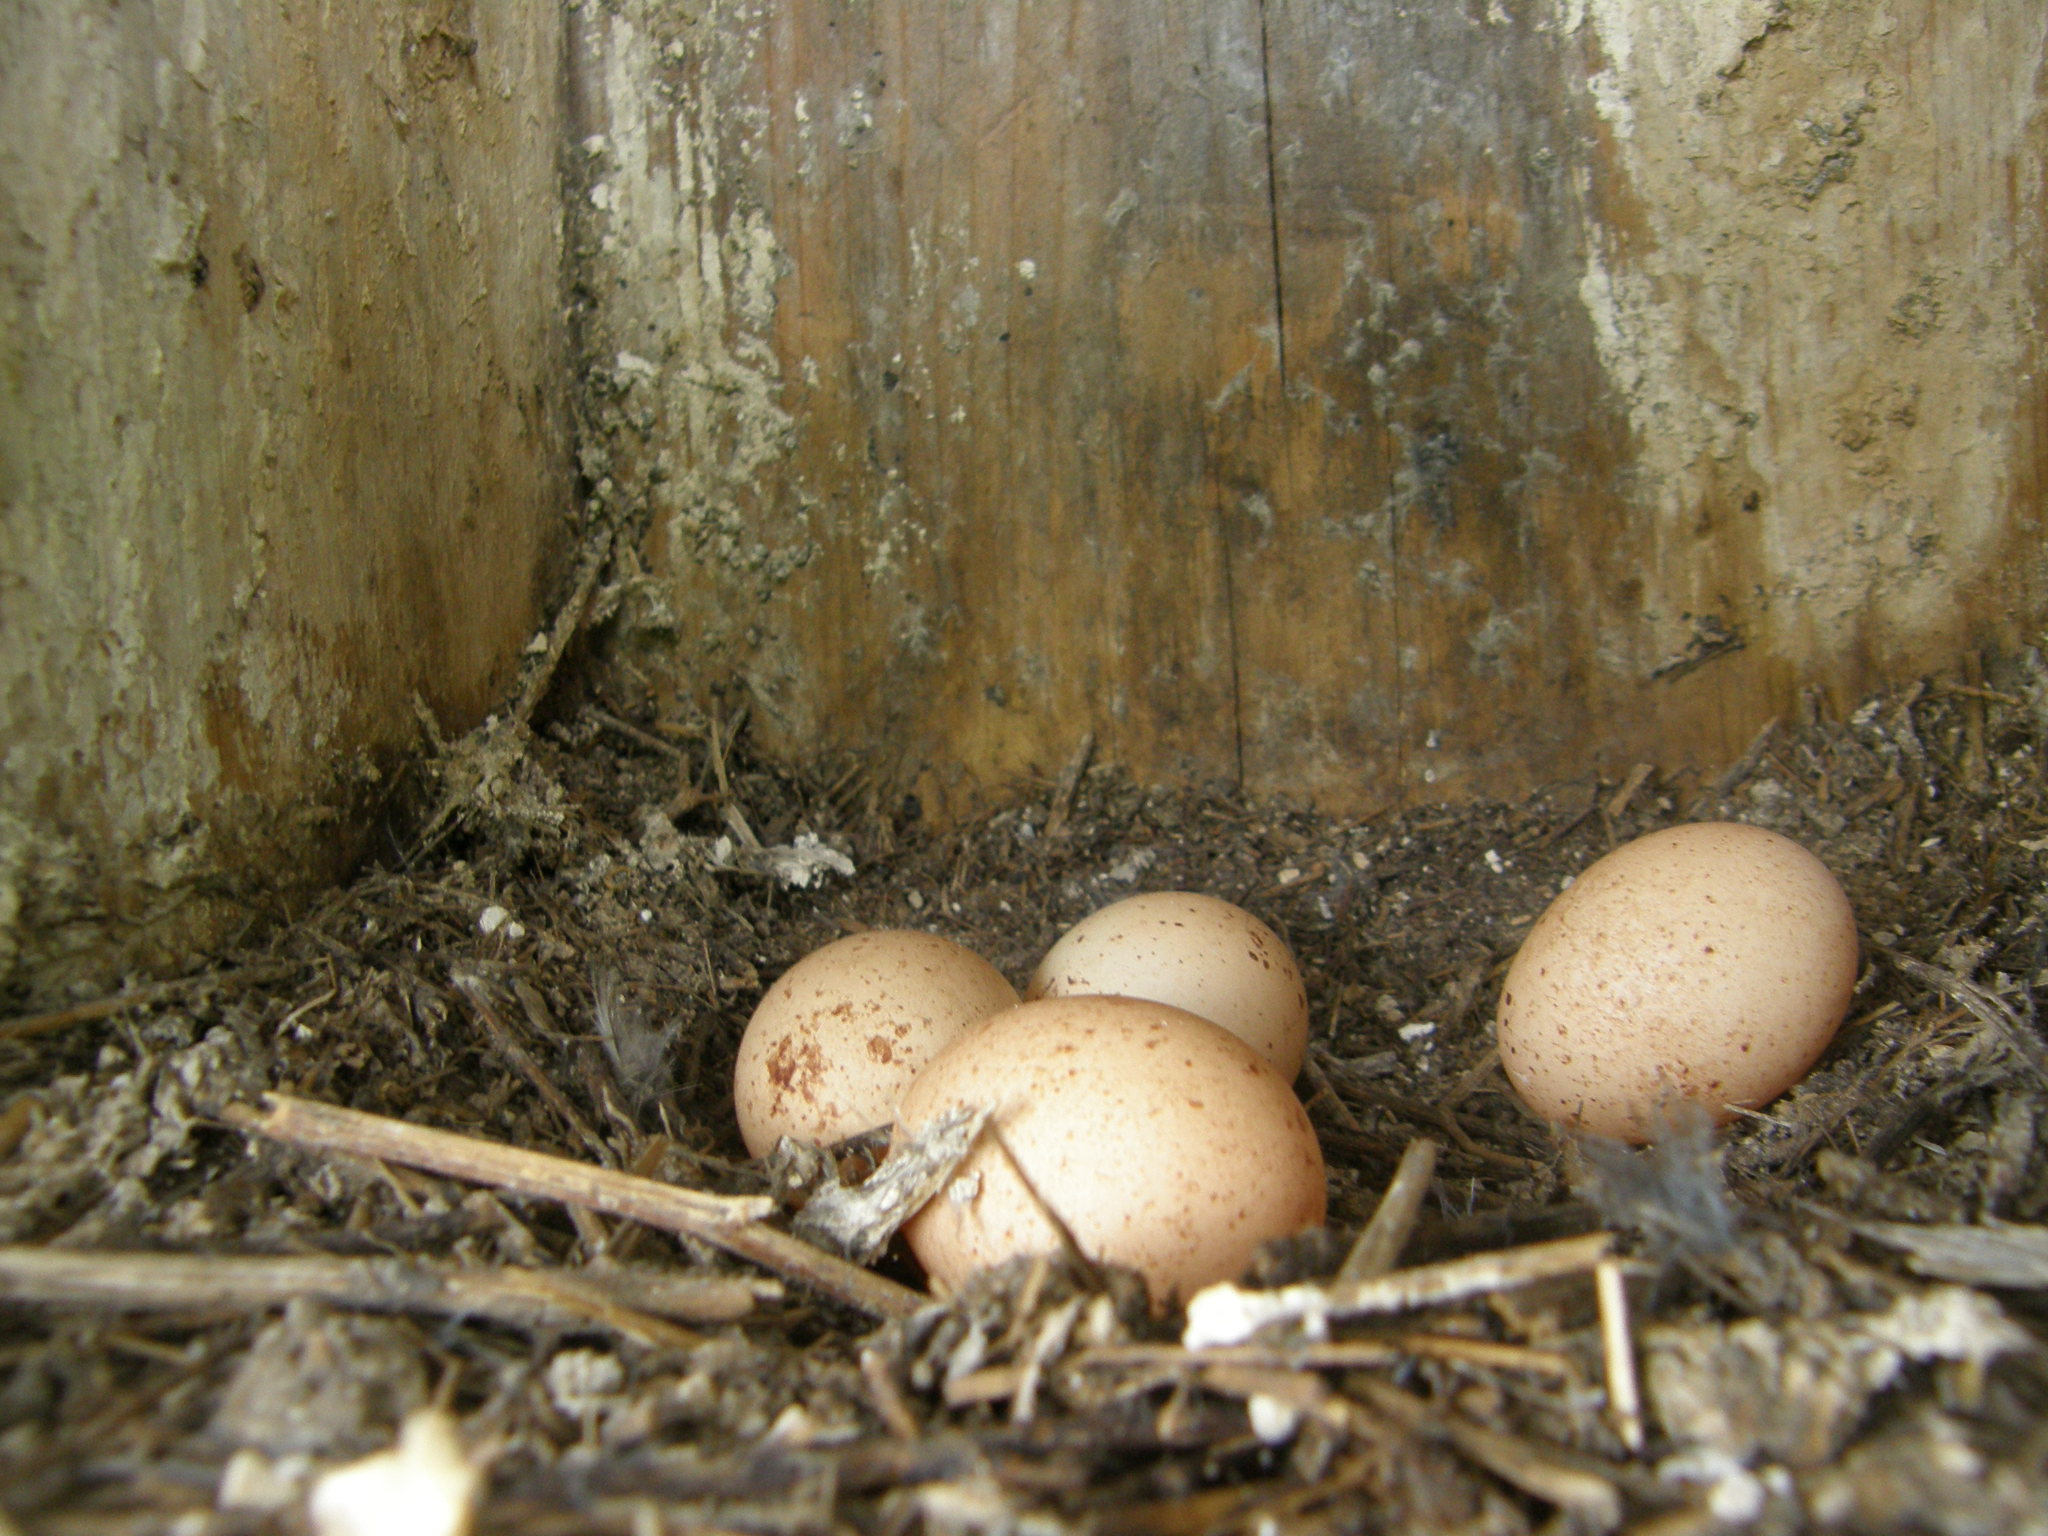 Kestrel Eggs